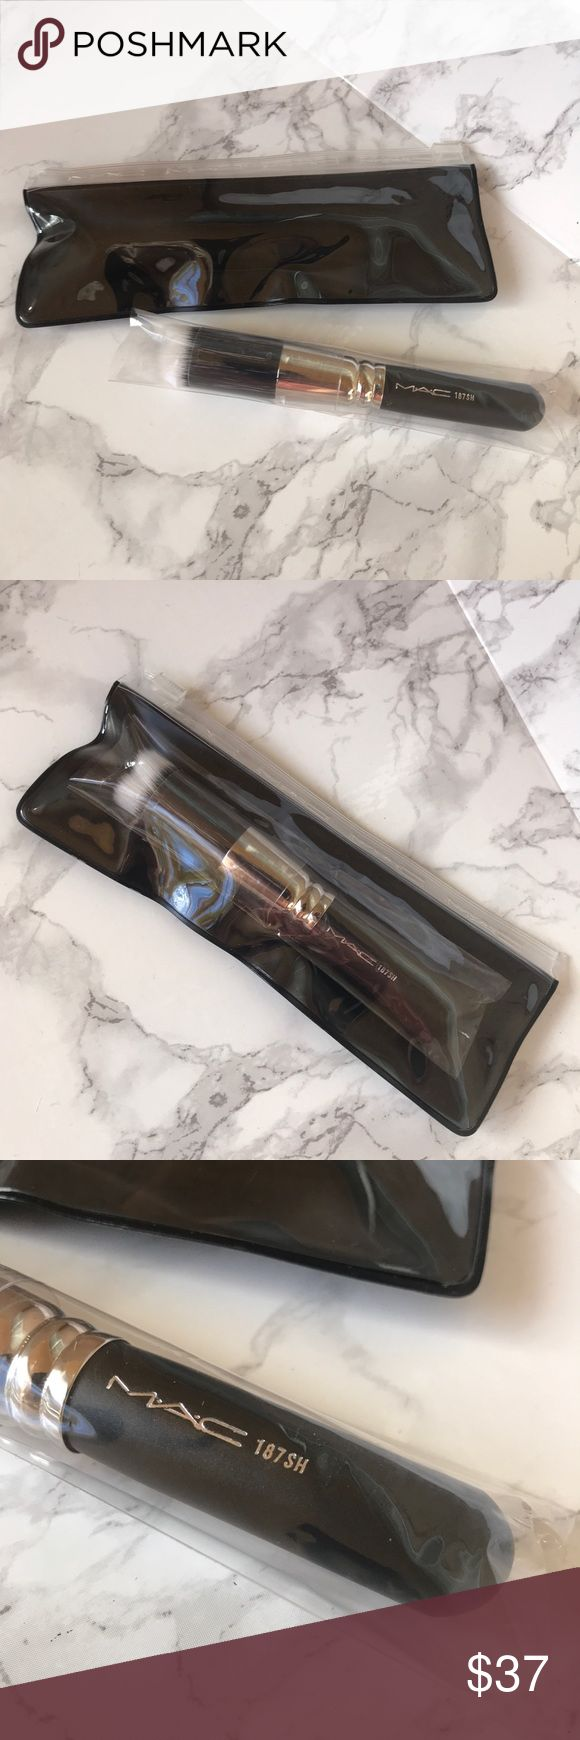 MAC 187 SH duo fibre face brush 🎀BRAND NEW IN BOX! 🎀 NEVER USED OR SWATCHED!  100% AUTHENTIC!   😍 🛍 I have TONS of other high end NWT makeup, BUNDLES WELCOME! 🛍😍 MAC Cosmetics Makeup Brushes & Tools